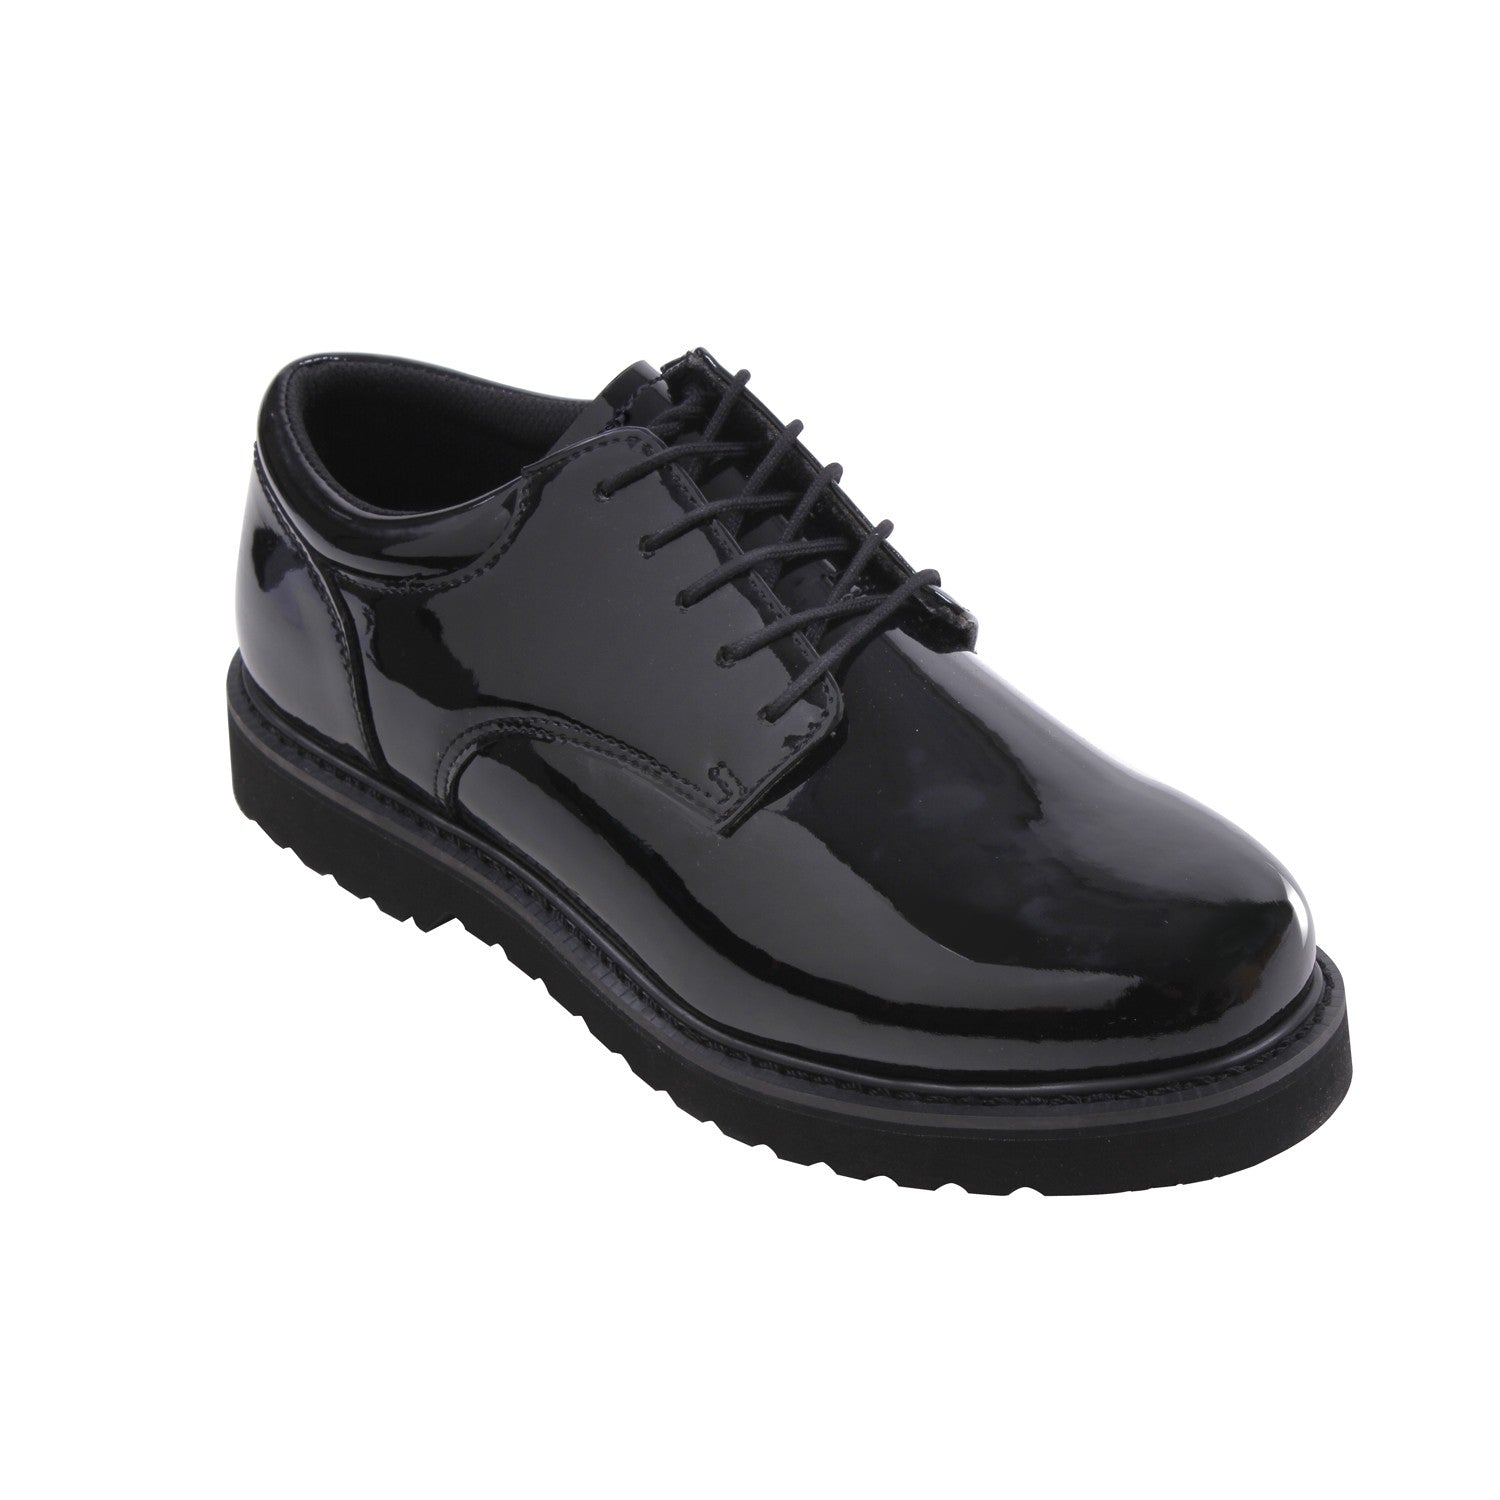 Military Uniform High Gloss Oxford Dress Shoe With Work Sole